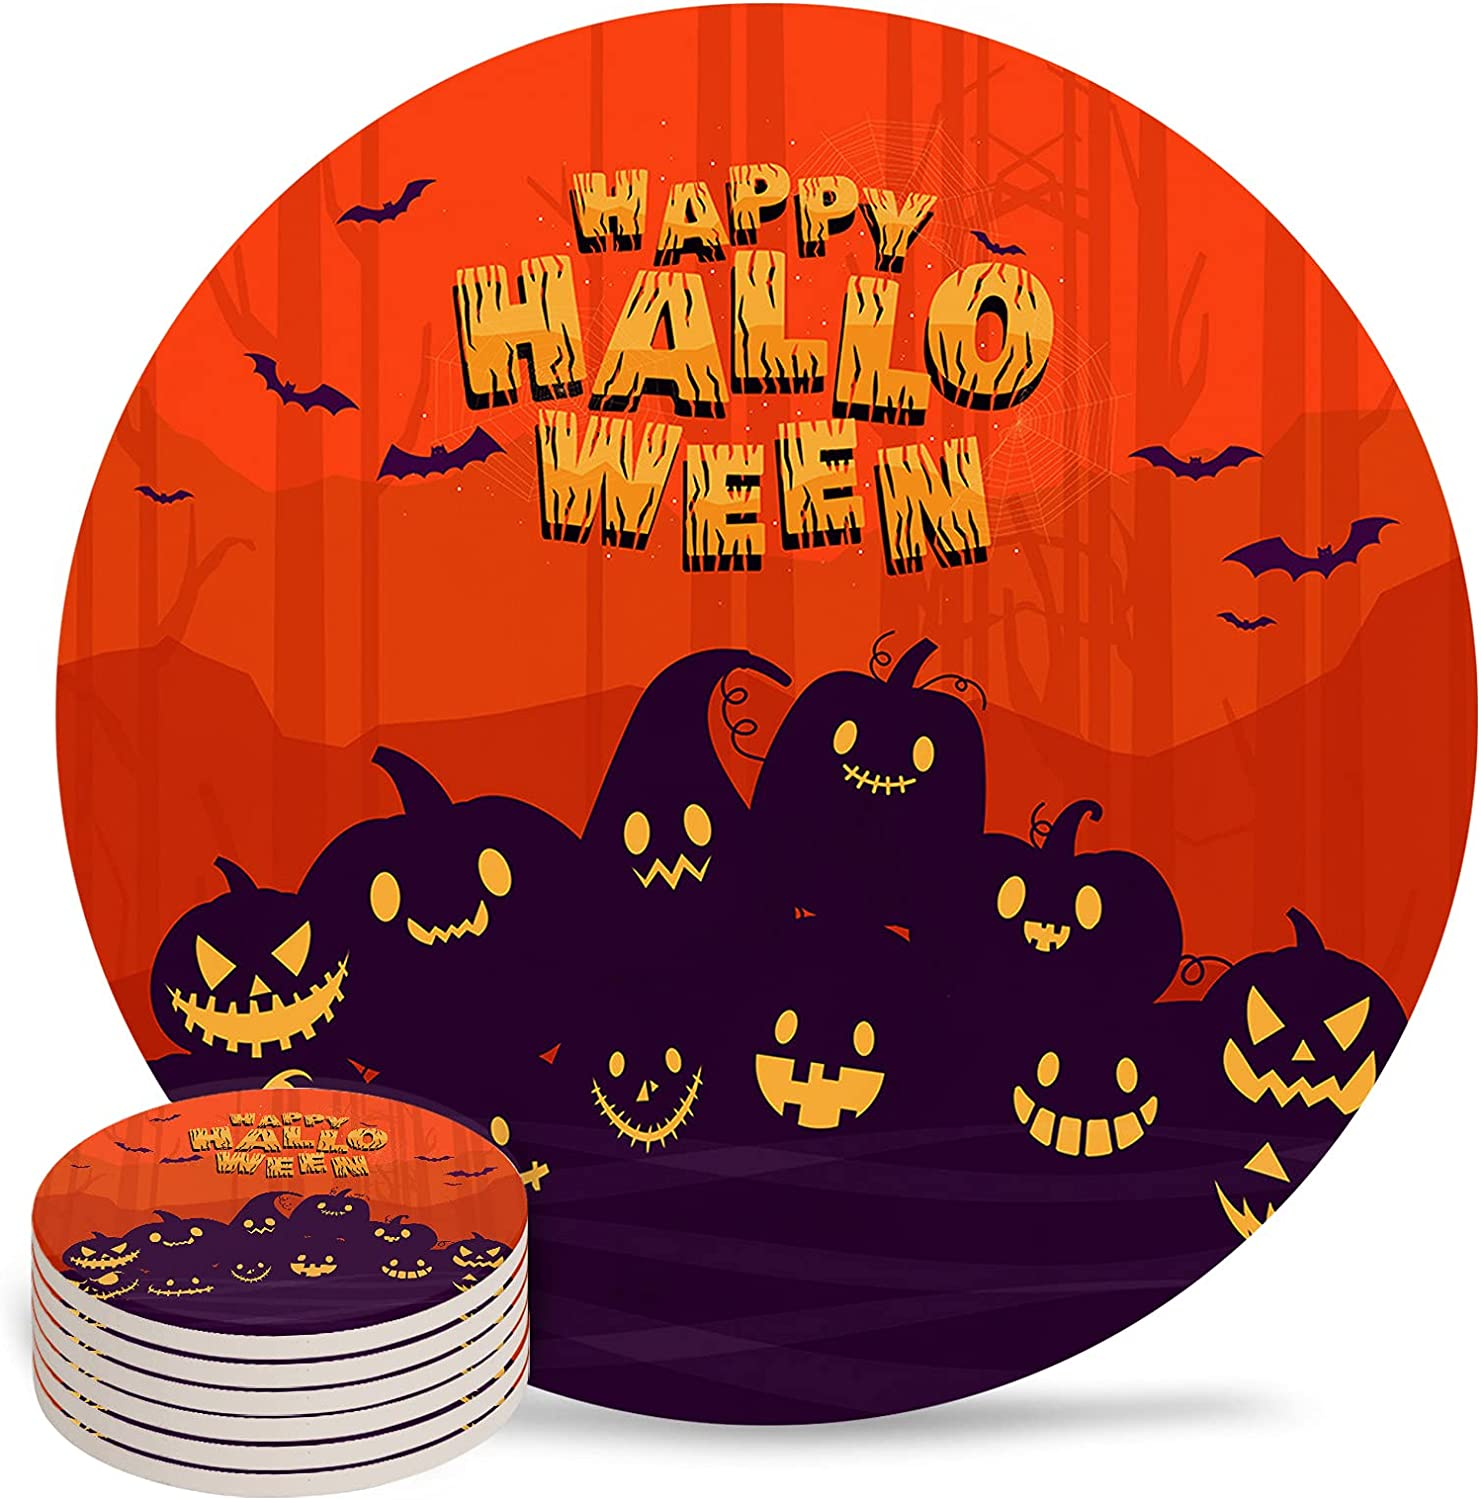 Scary Overseas parallel import regular item Halloween Pumpkin Ghost Face and for Bat Coasters A Drink Tucson Mall